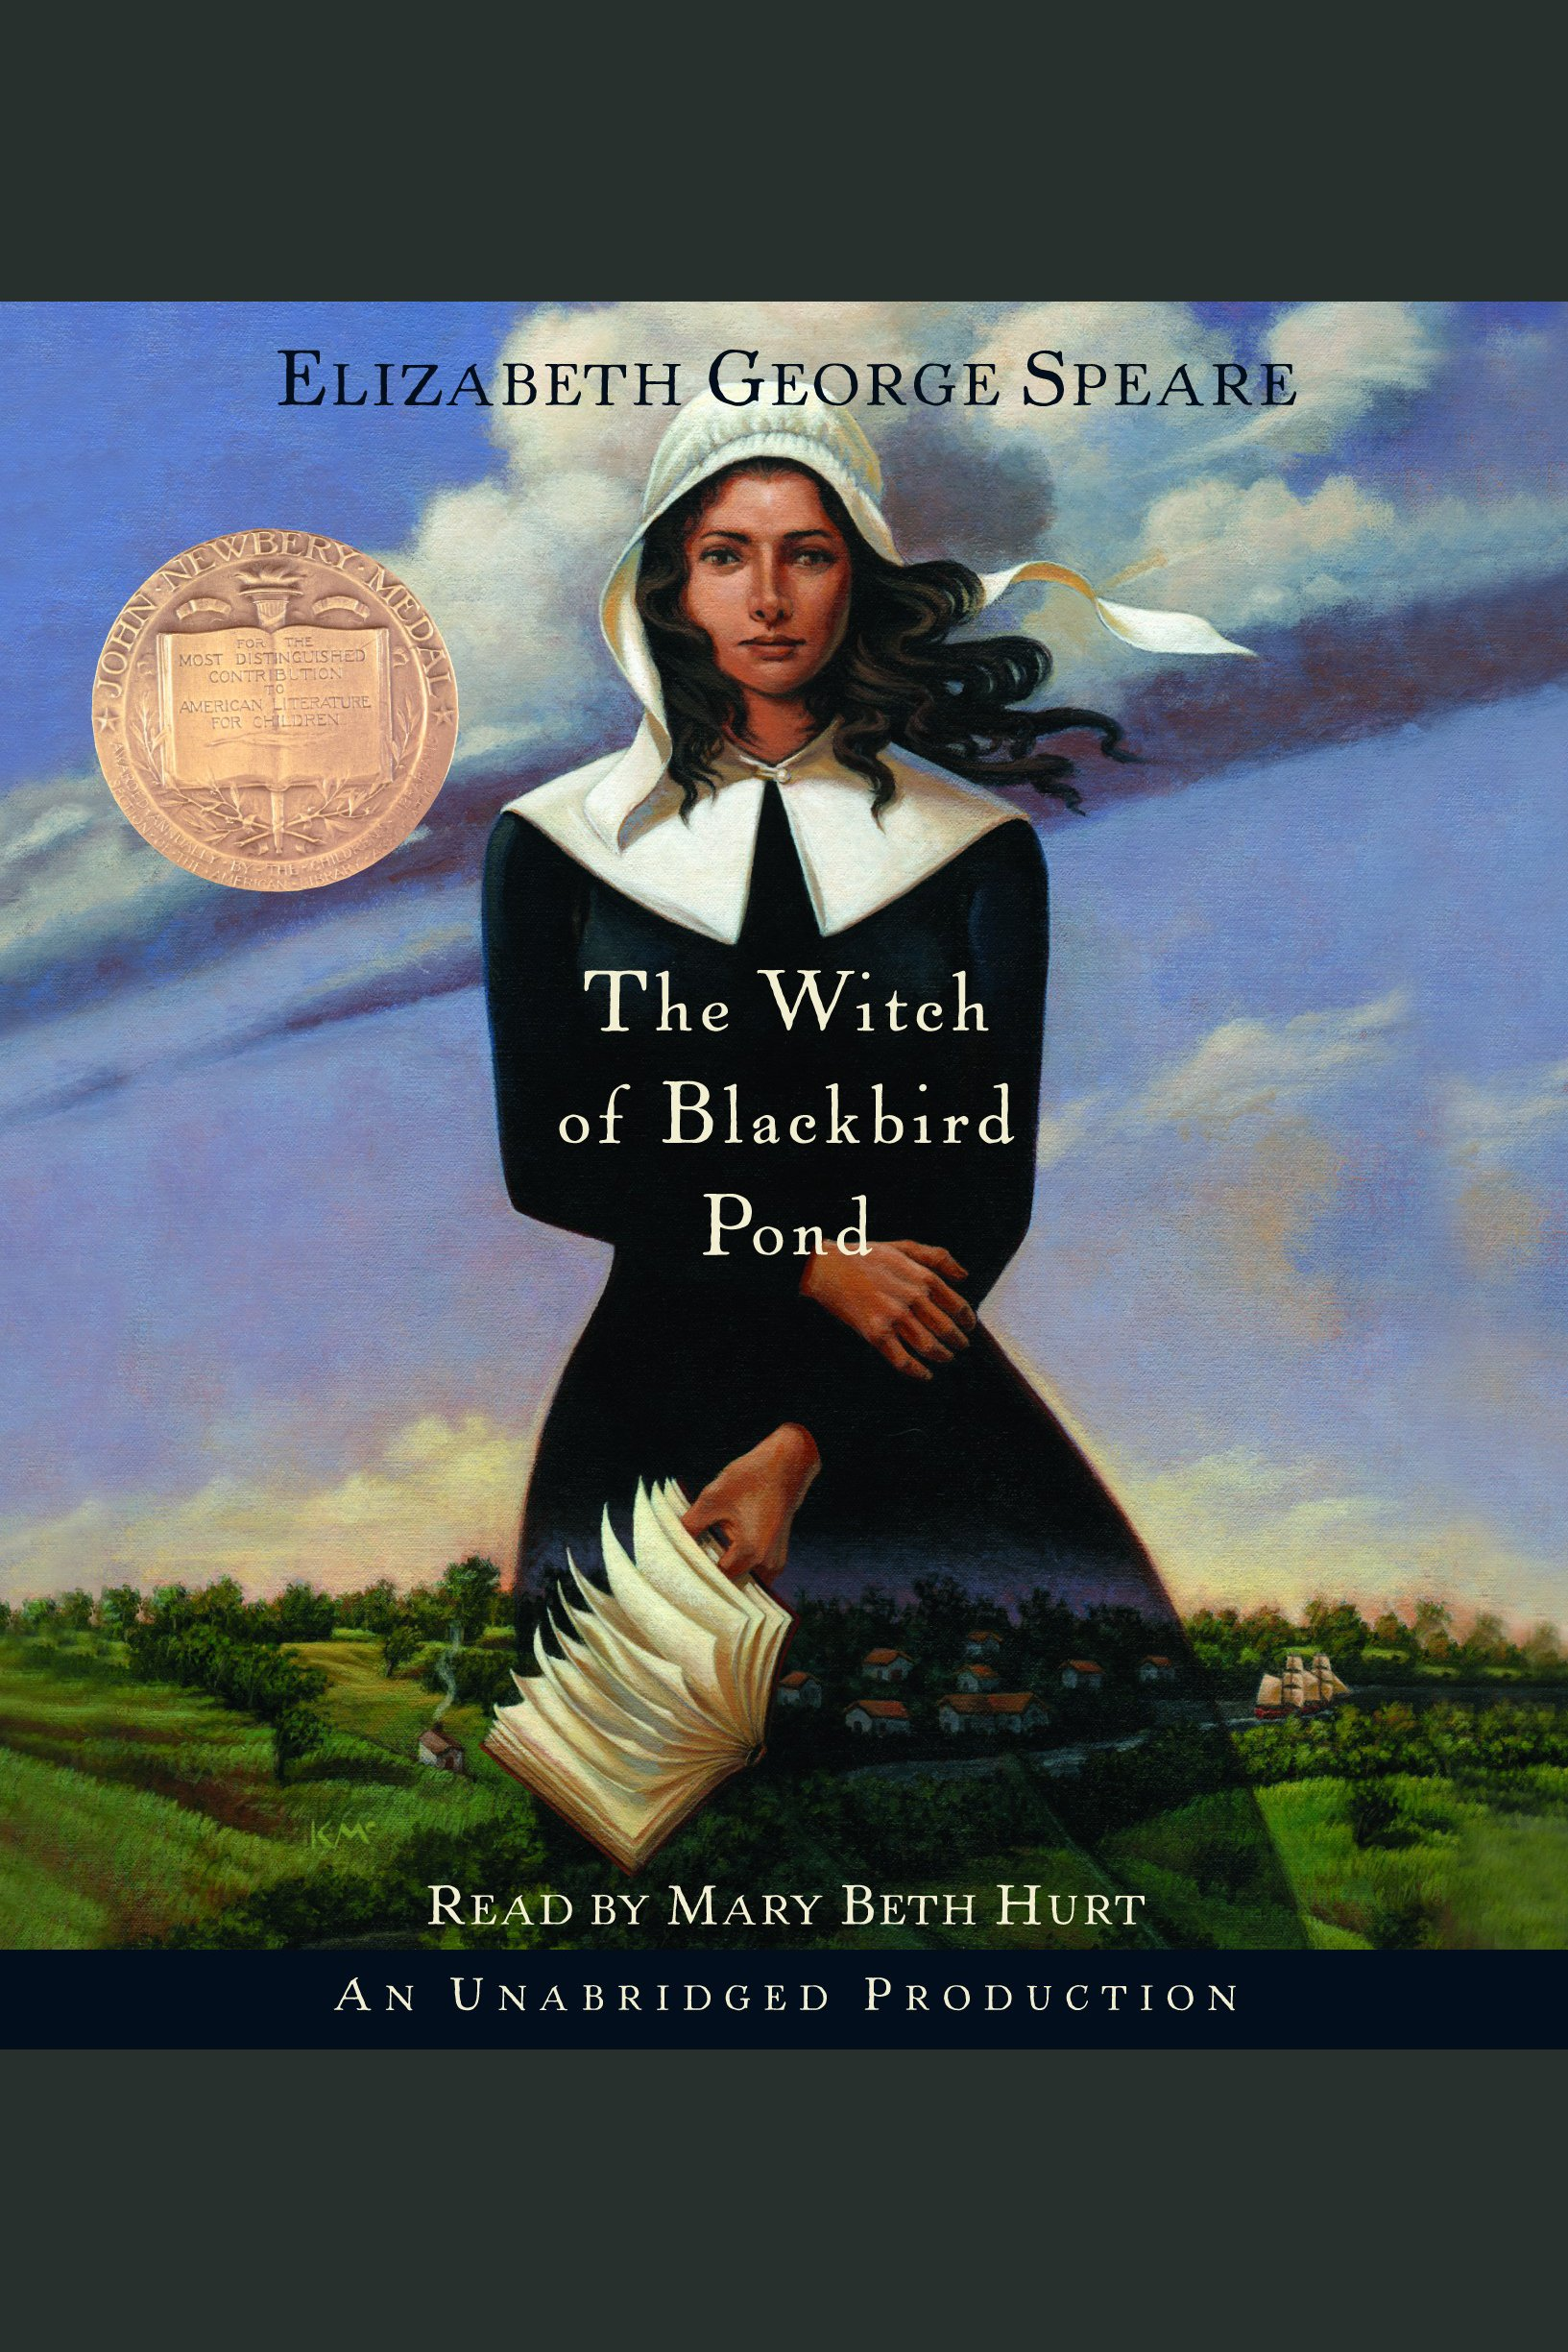 Cover Image of The Witch of Blackbird Pond